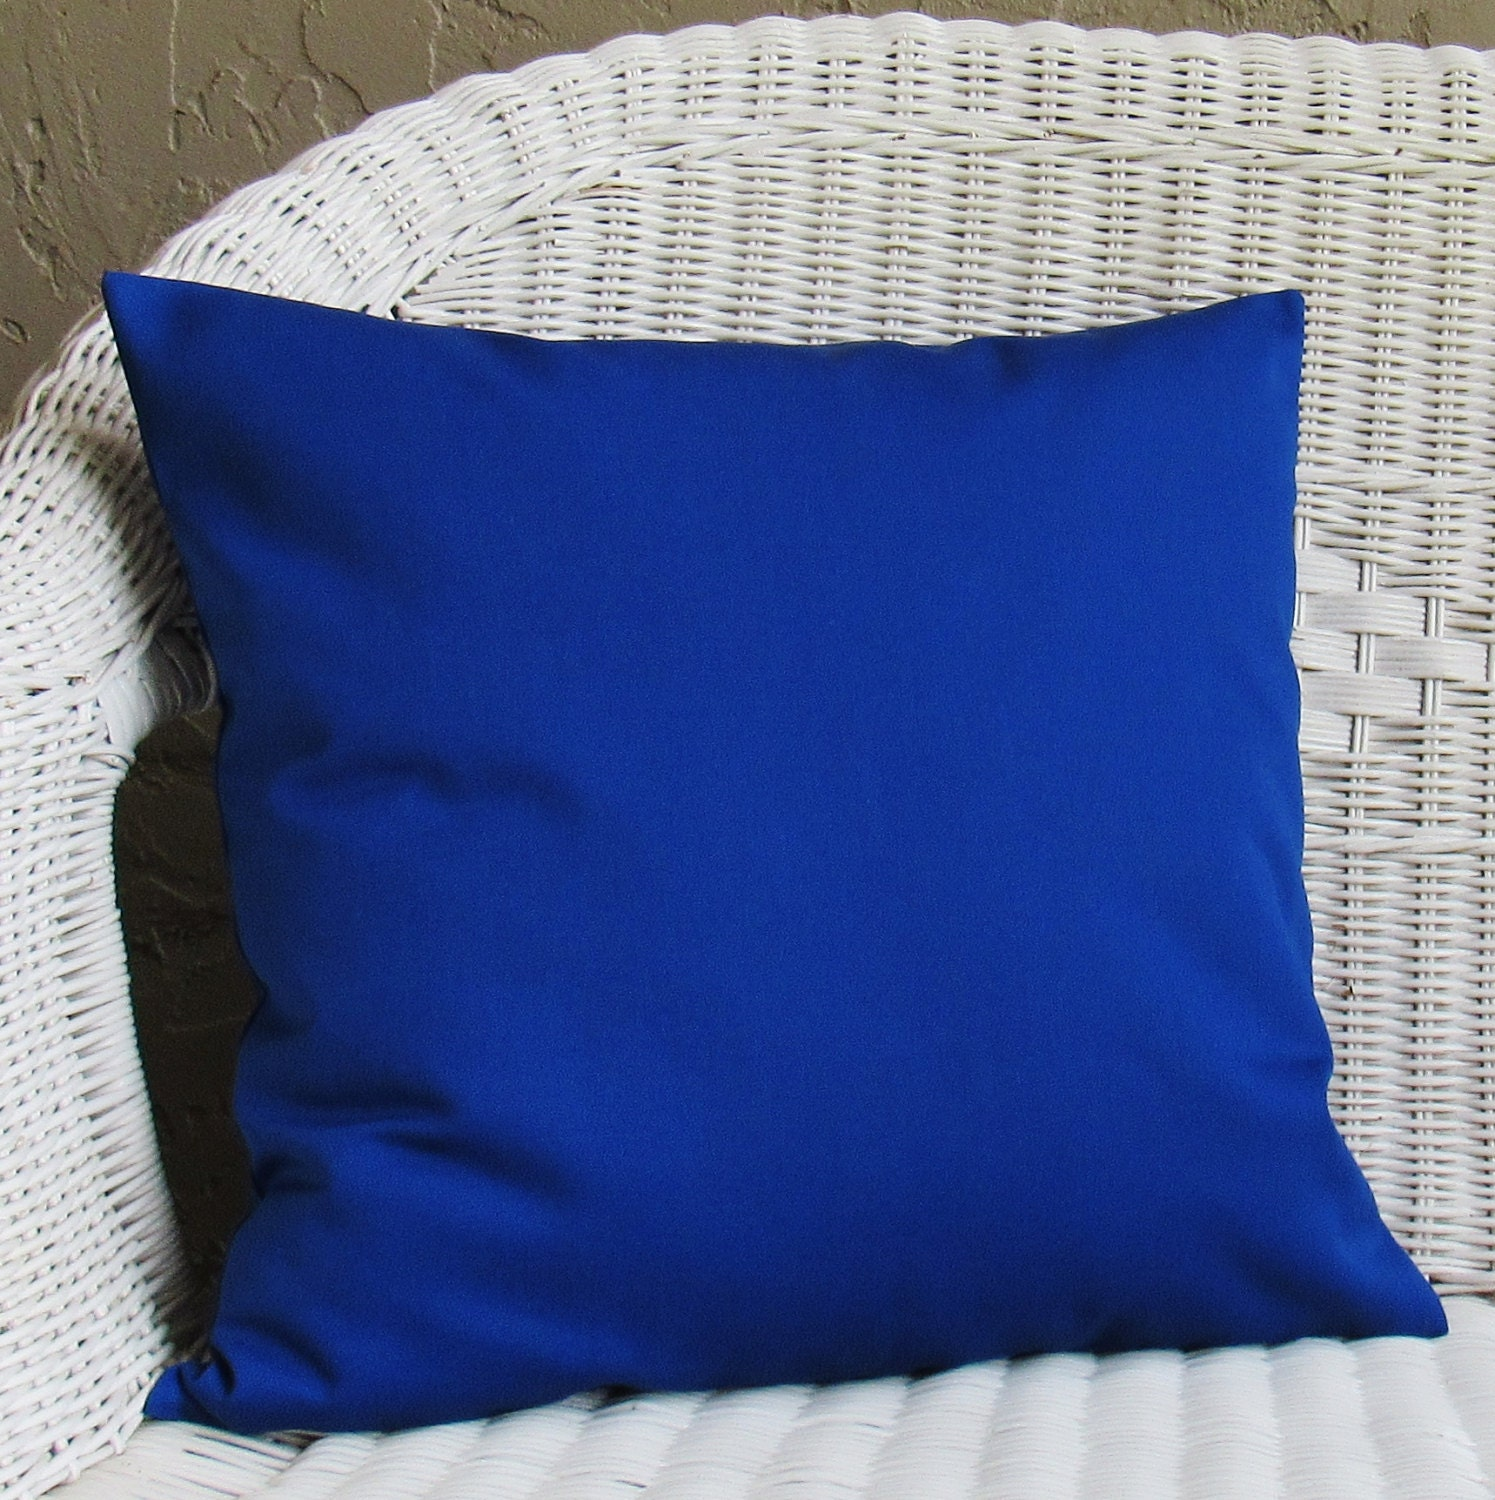 Throw Pillows Royal Blue : Royal Blue Cobalt Throw Pillow Cover Decorative Accent Toss